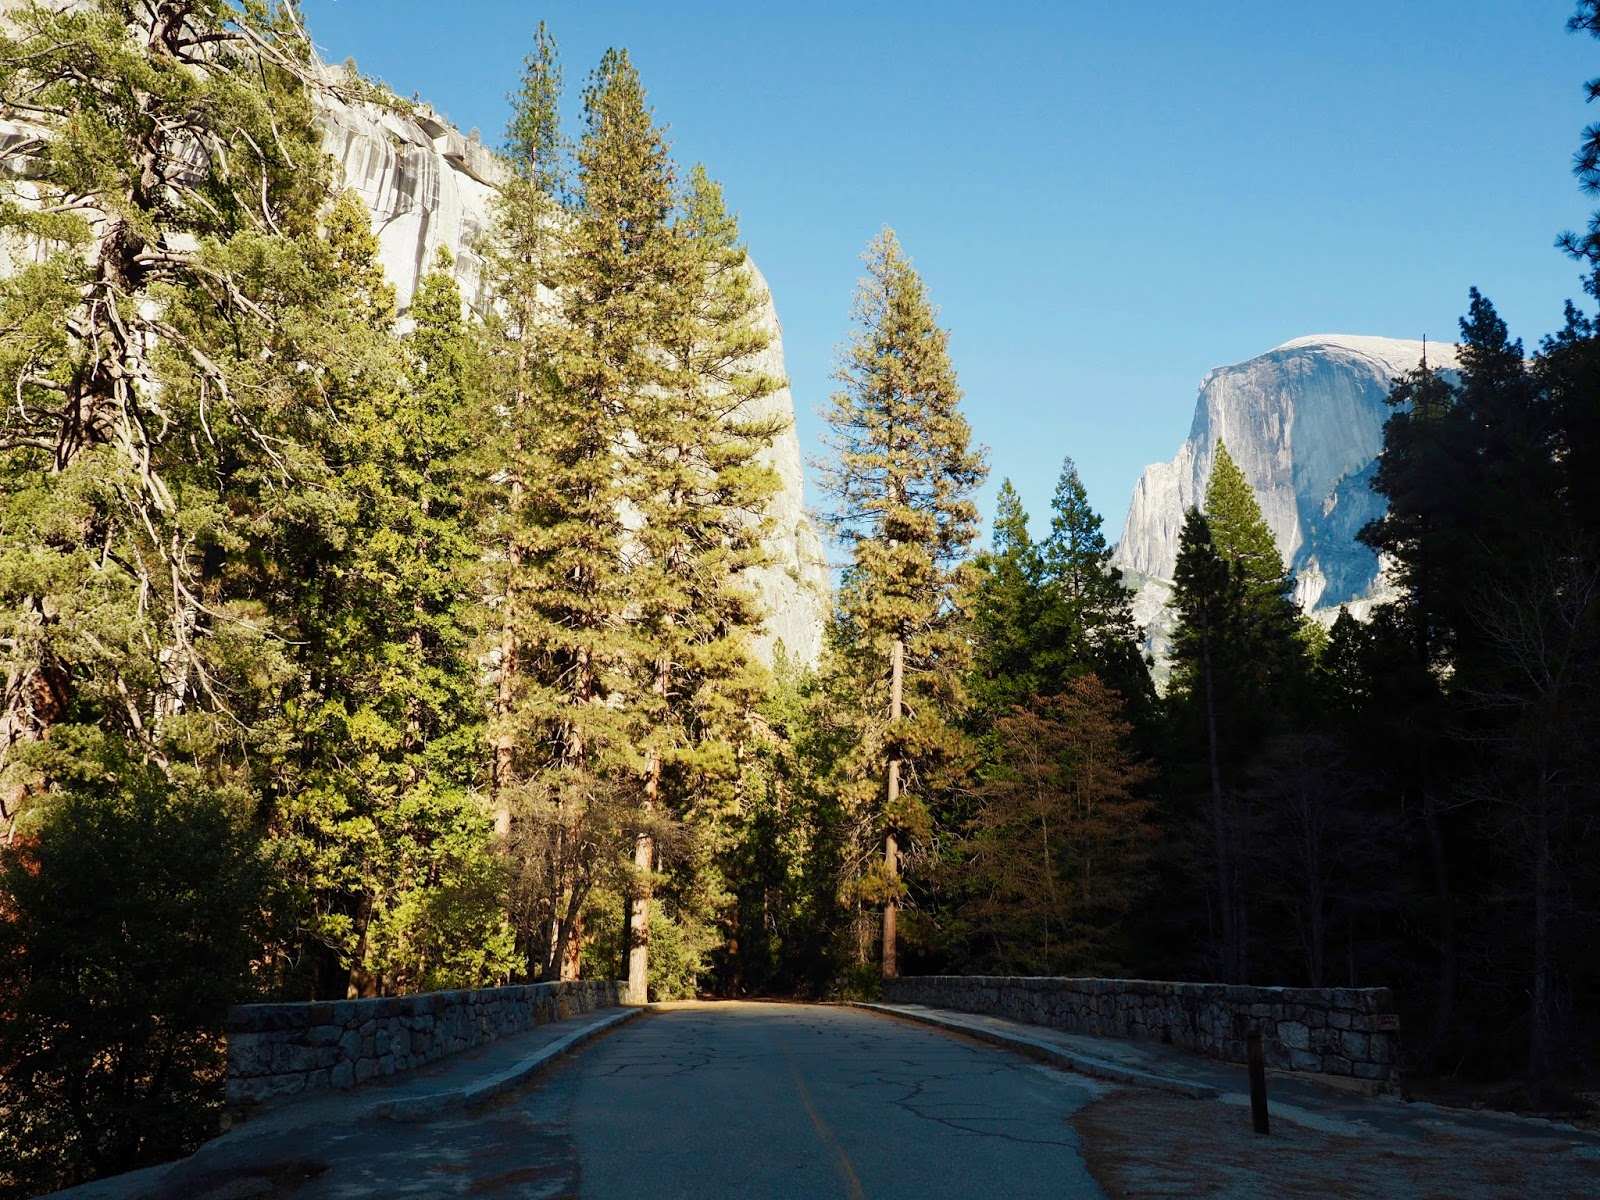 usa america california yosemite national park half dome view scenery travelling holiday tips road trip kirstie pickering blog blogger travel instagram inspo inspiration